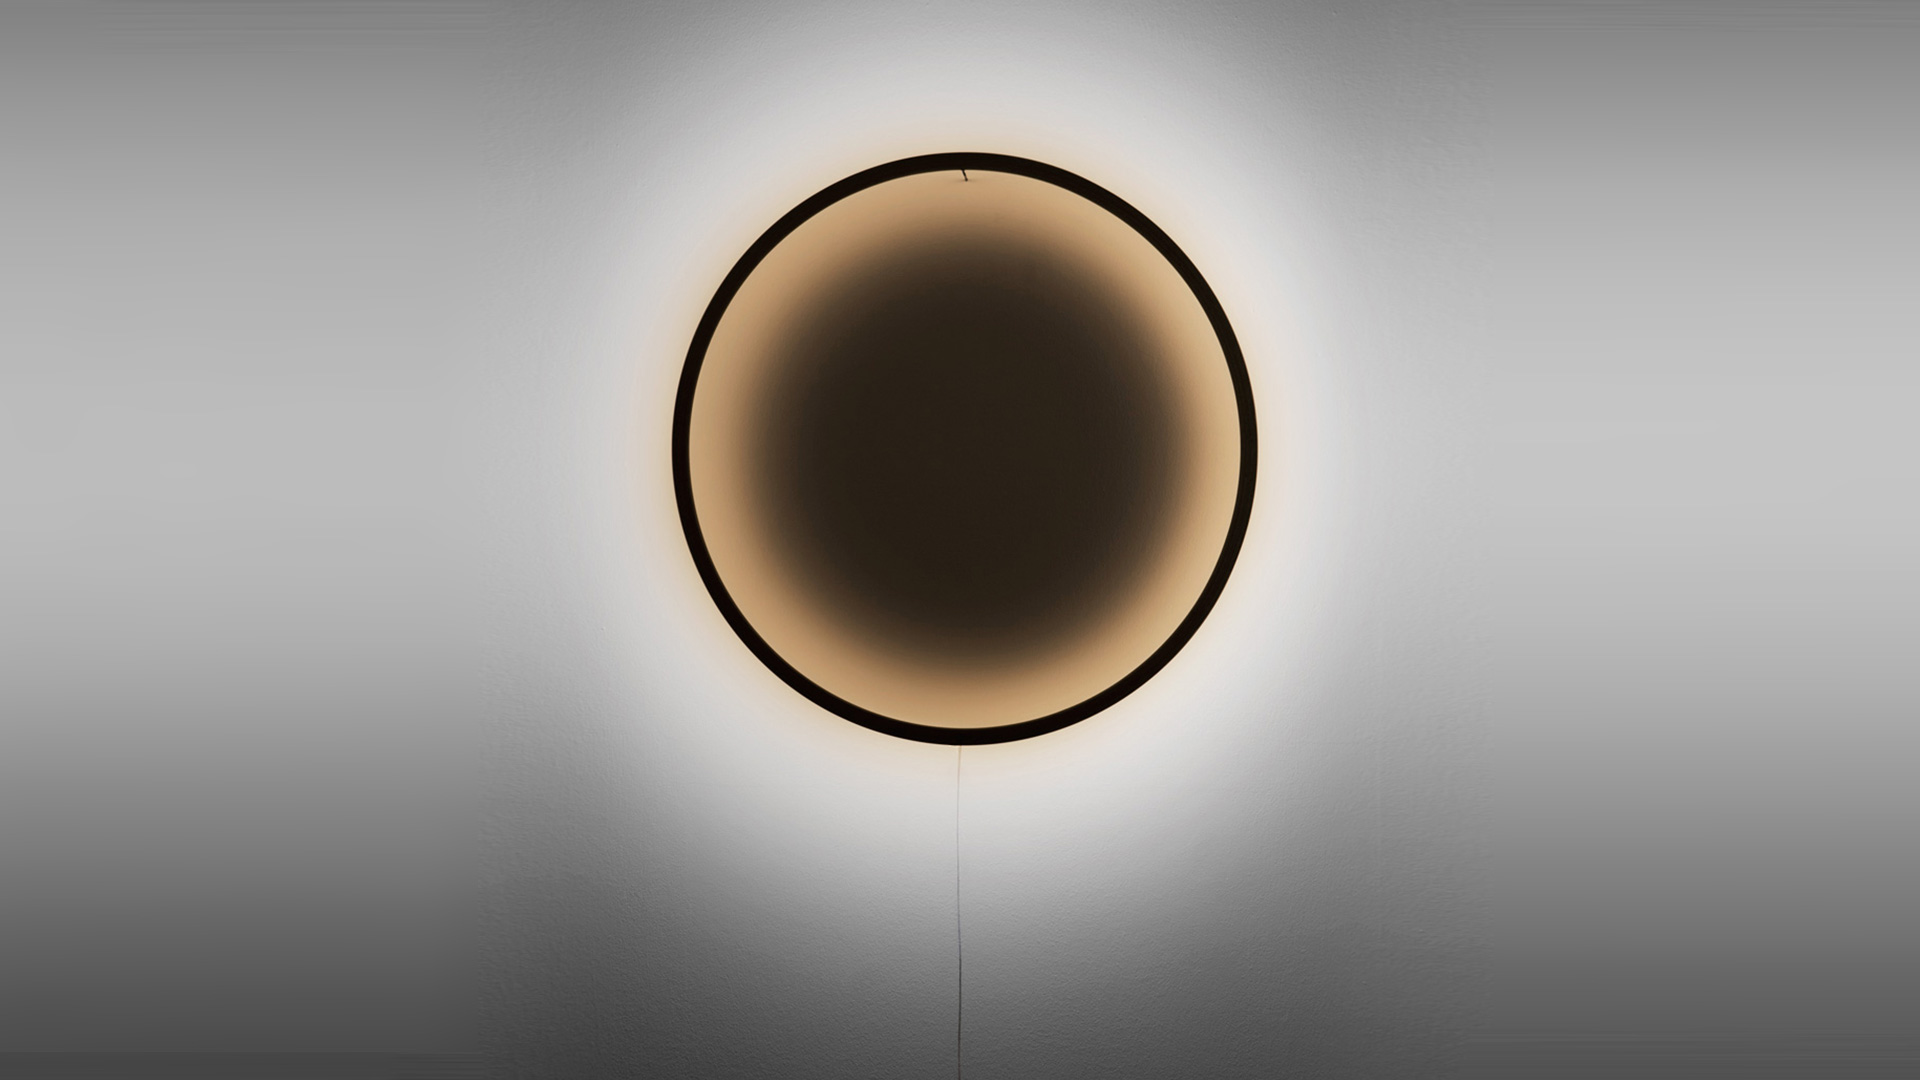 ECLIPSE LAMP by TILEN SEPIC